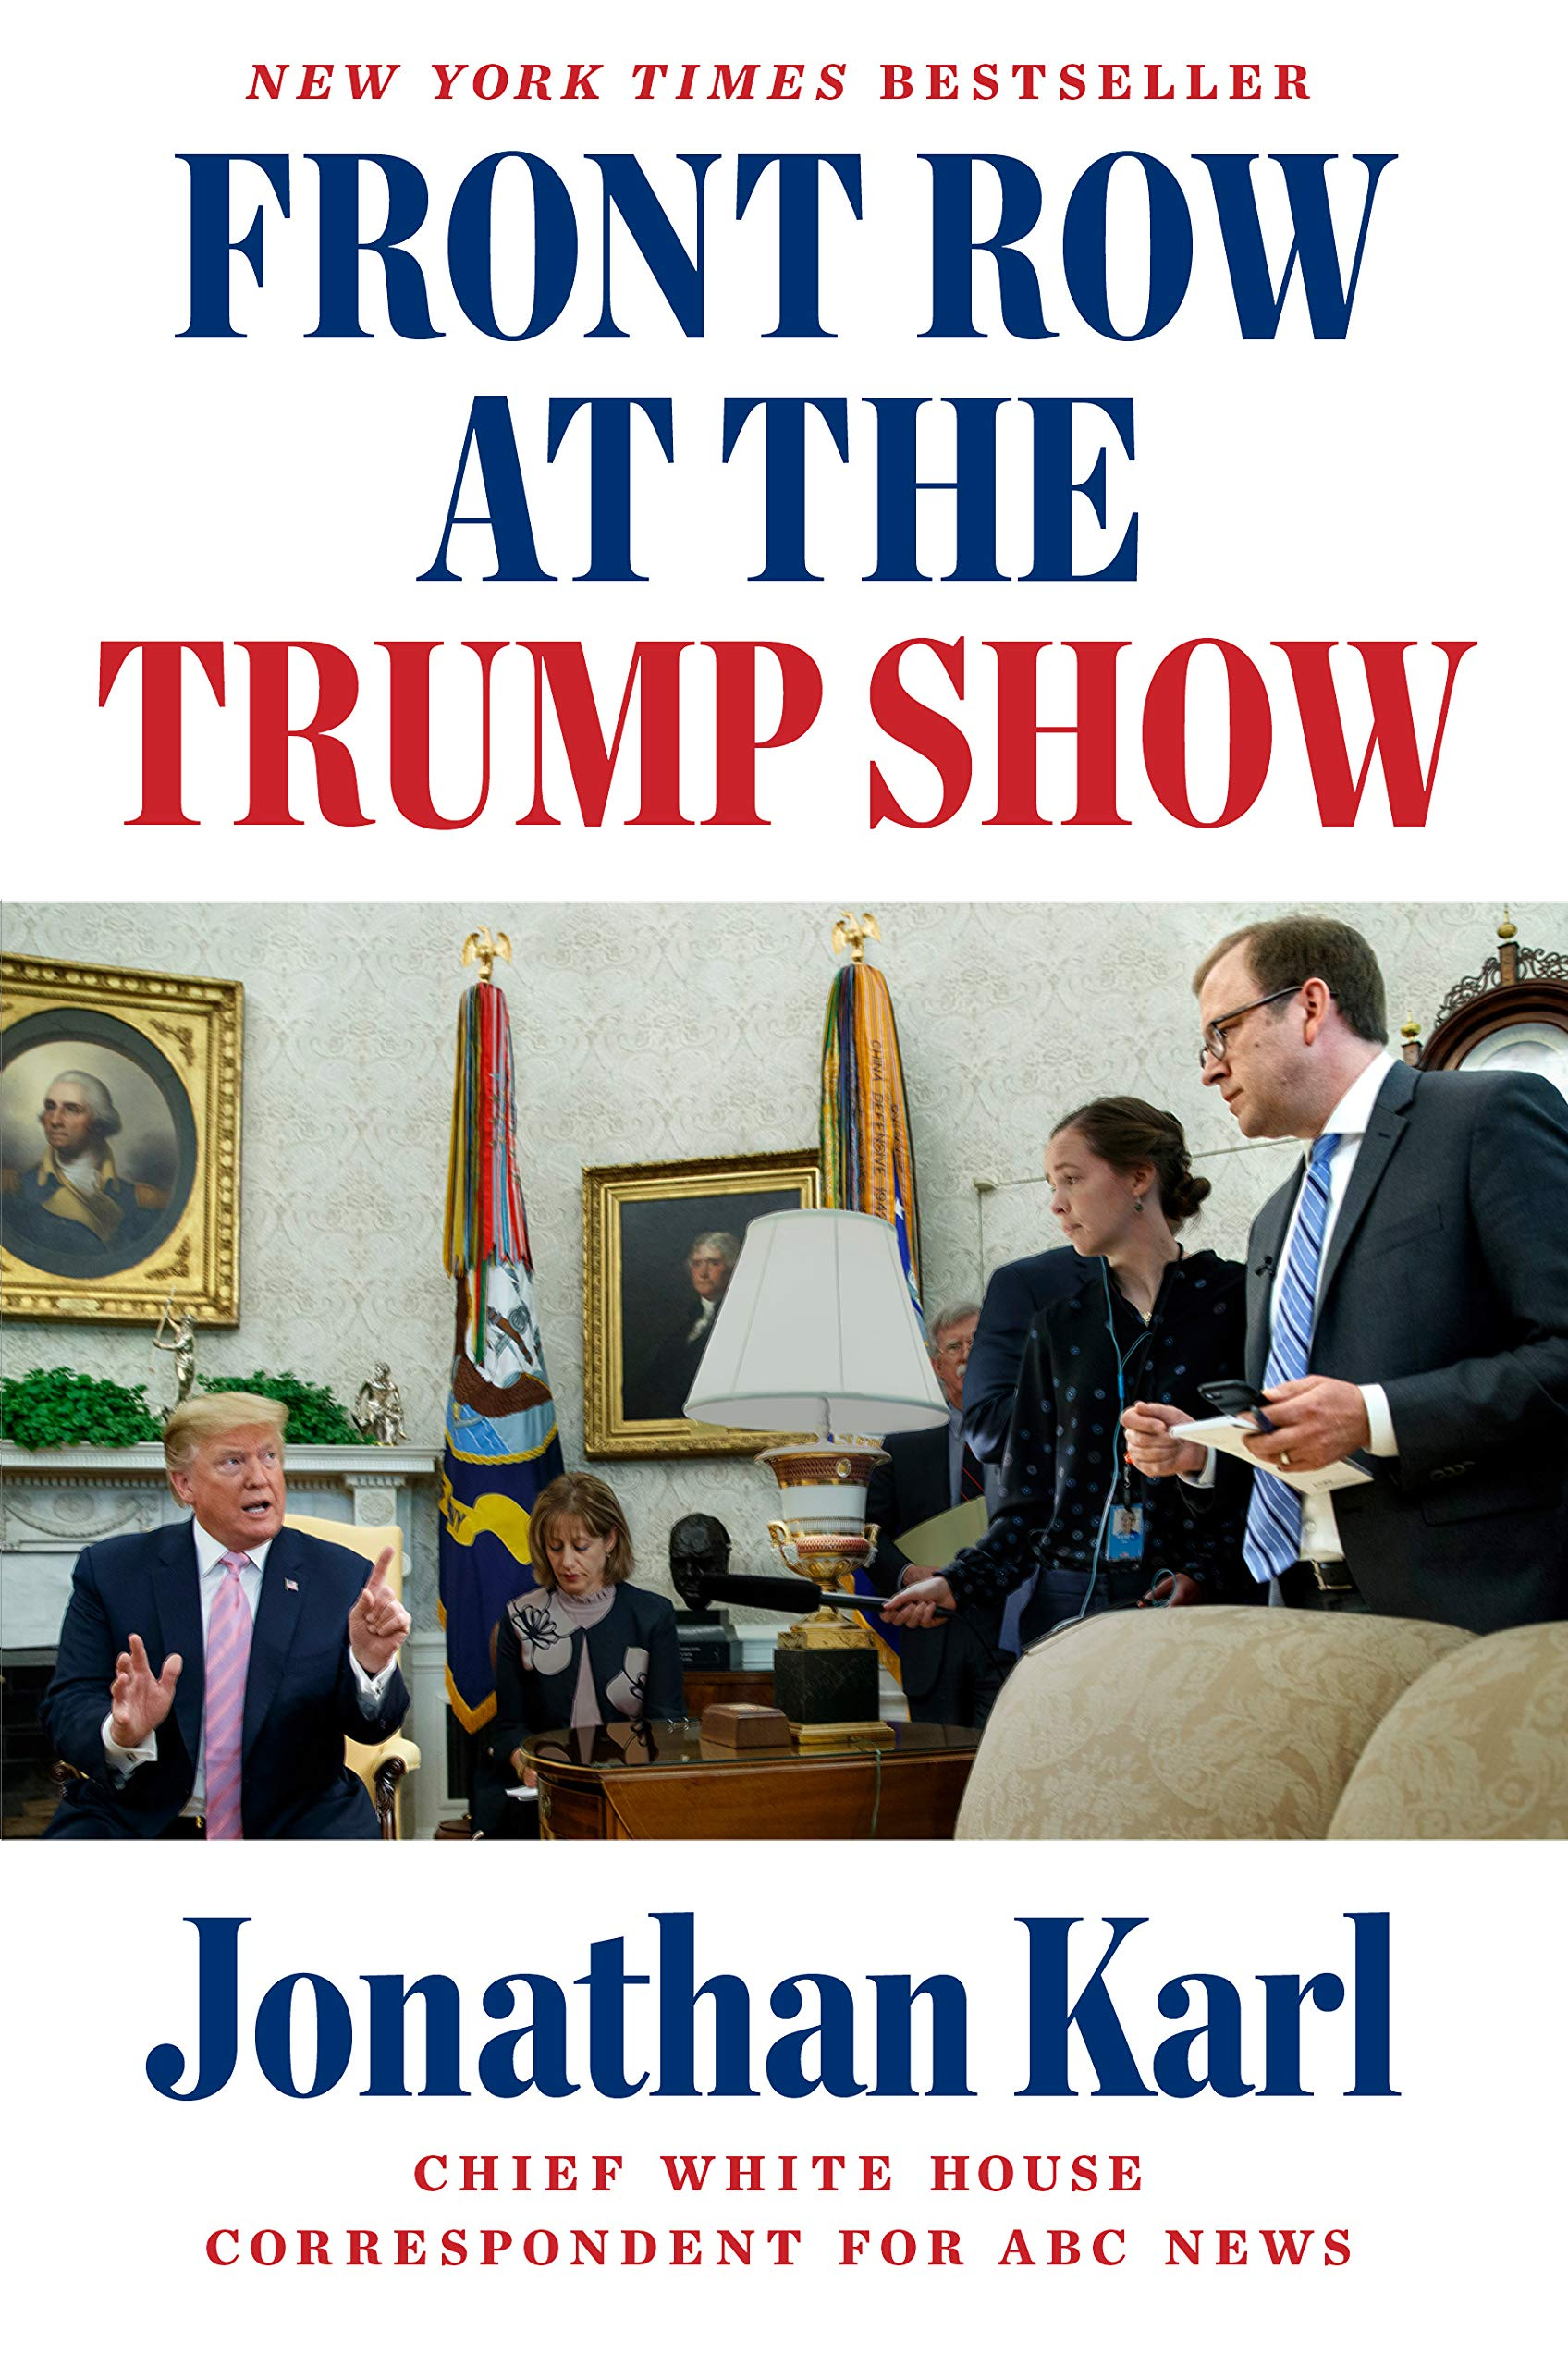 The Trump Show - Season 1 Episode 3